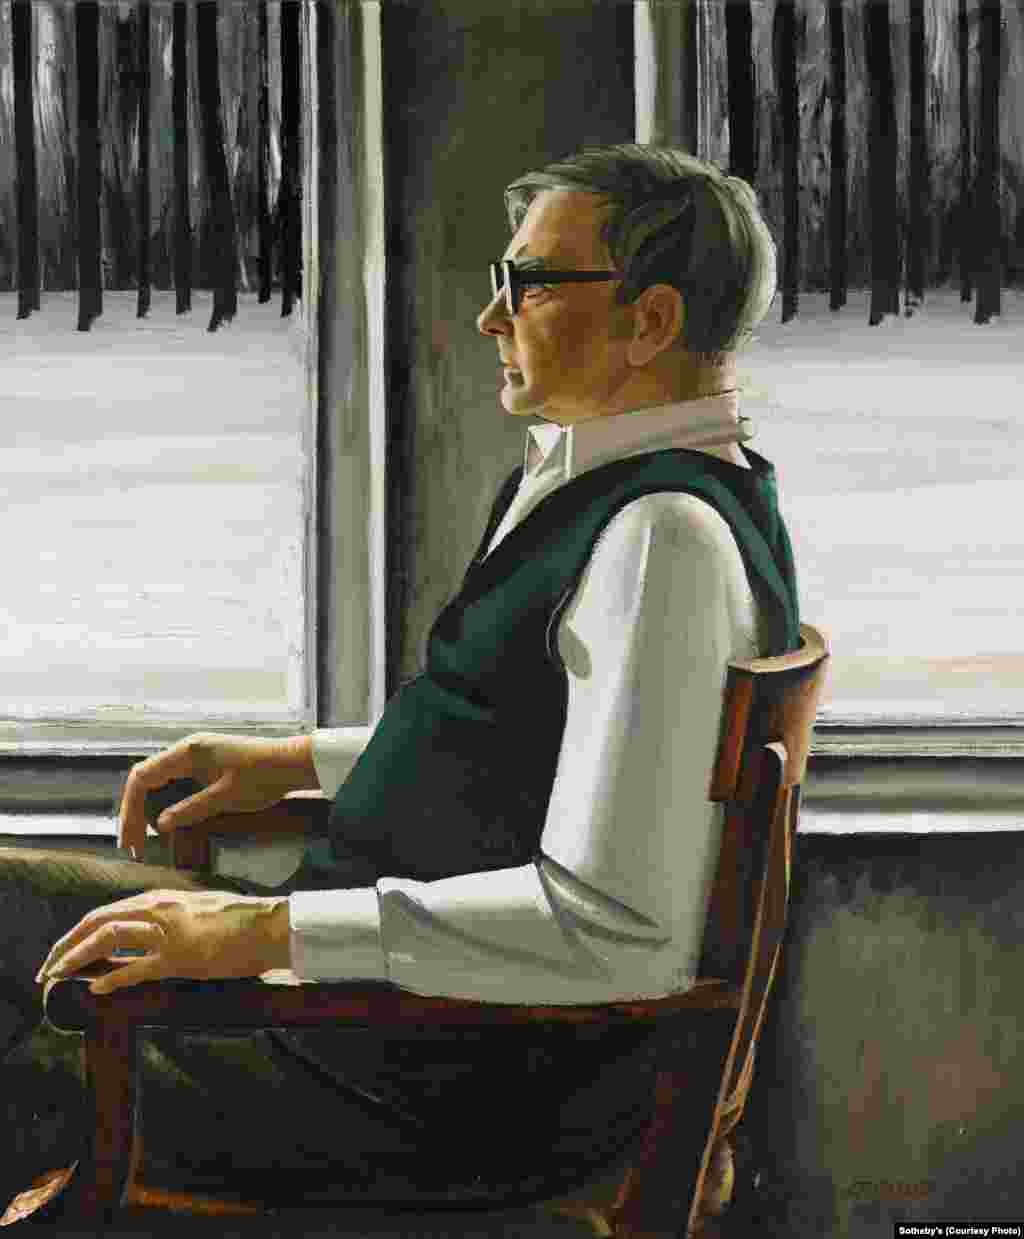 A 1987 portrait of Dmitry Shostakovich by Azerbaijani artist Tair Salakhov (b. 1928). Salakhov was a major figure of the Soviet art world and was celebrated for painting many of the leading composers of the time.